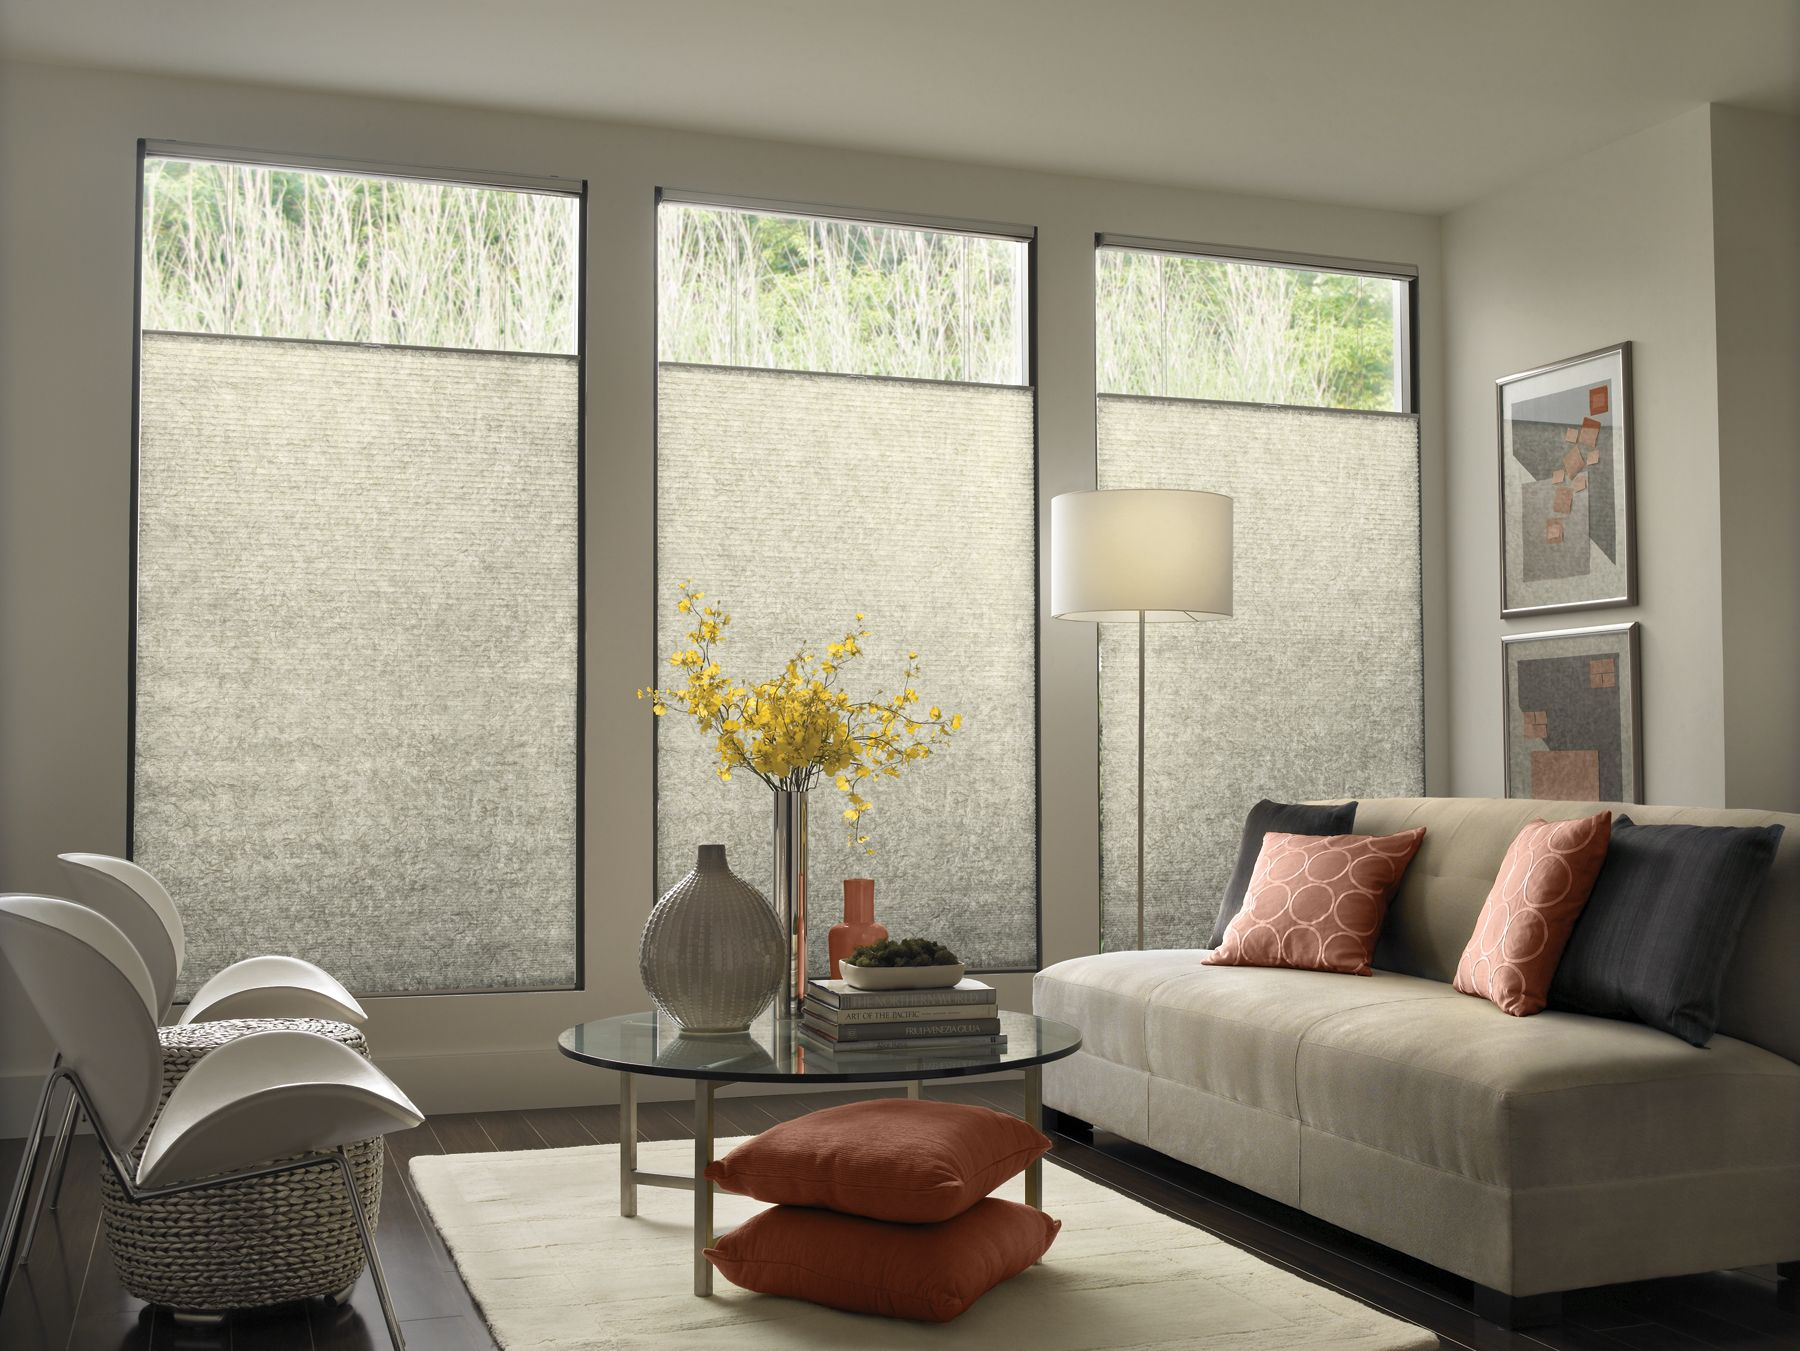 Modern window treatment ideas -